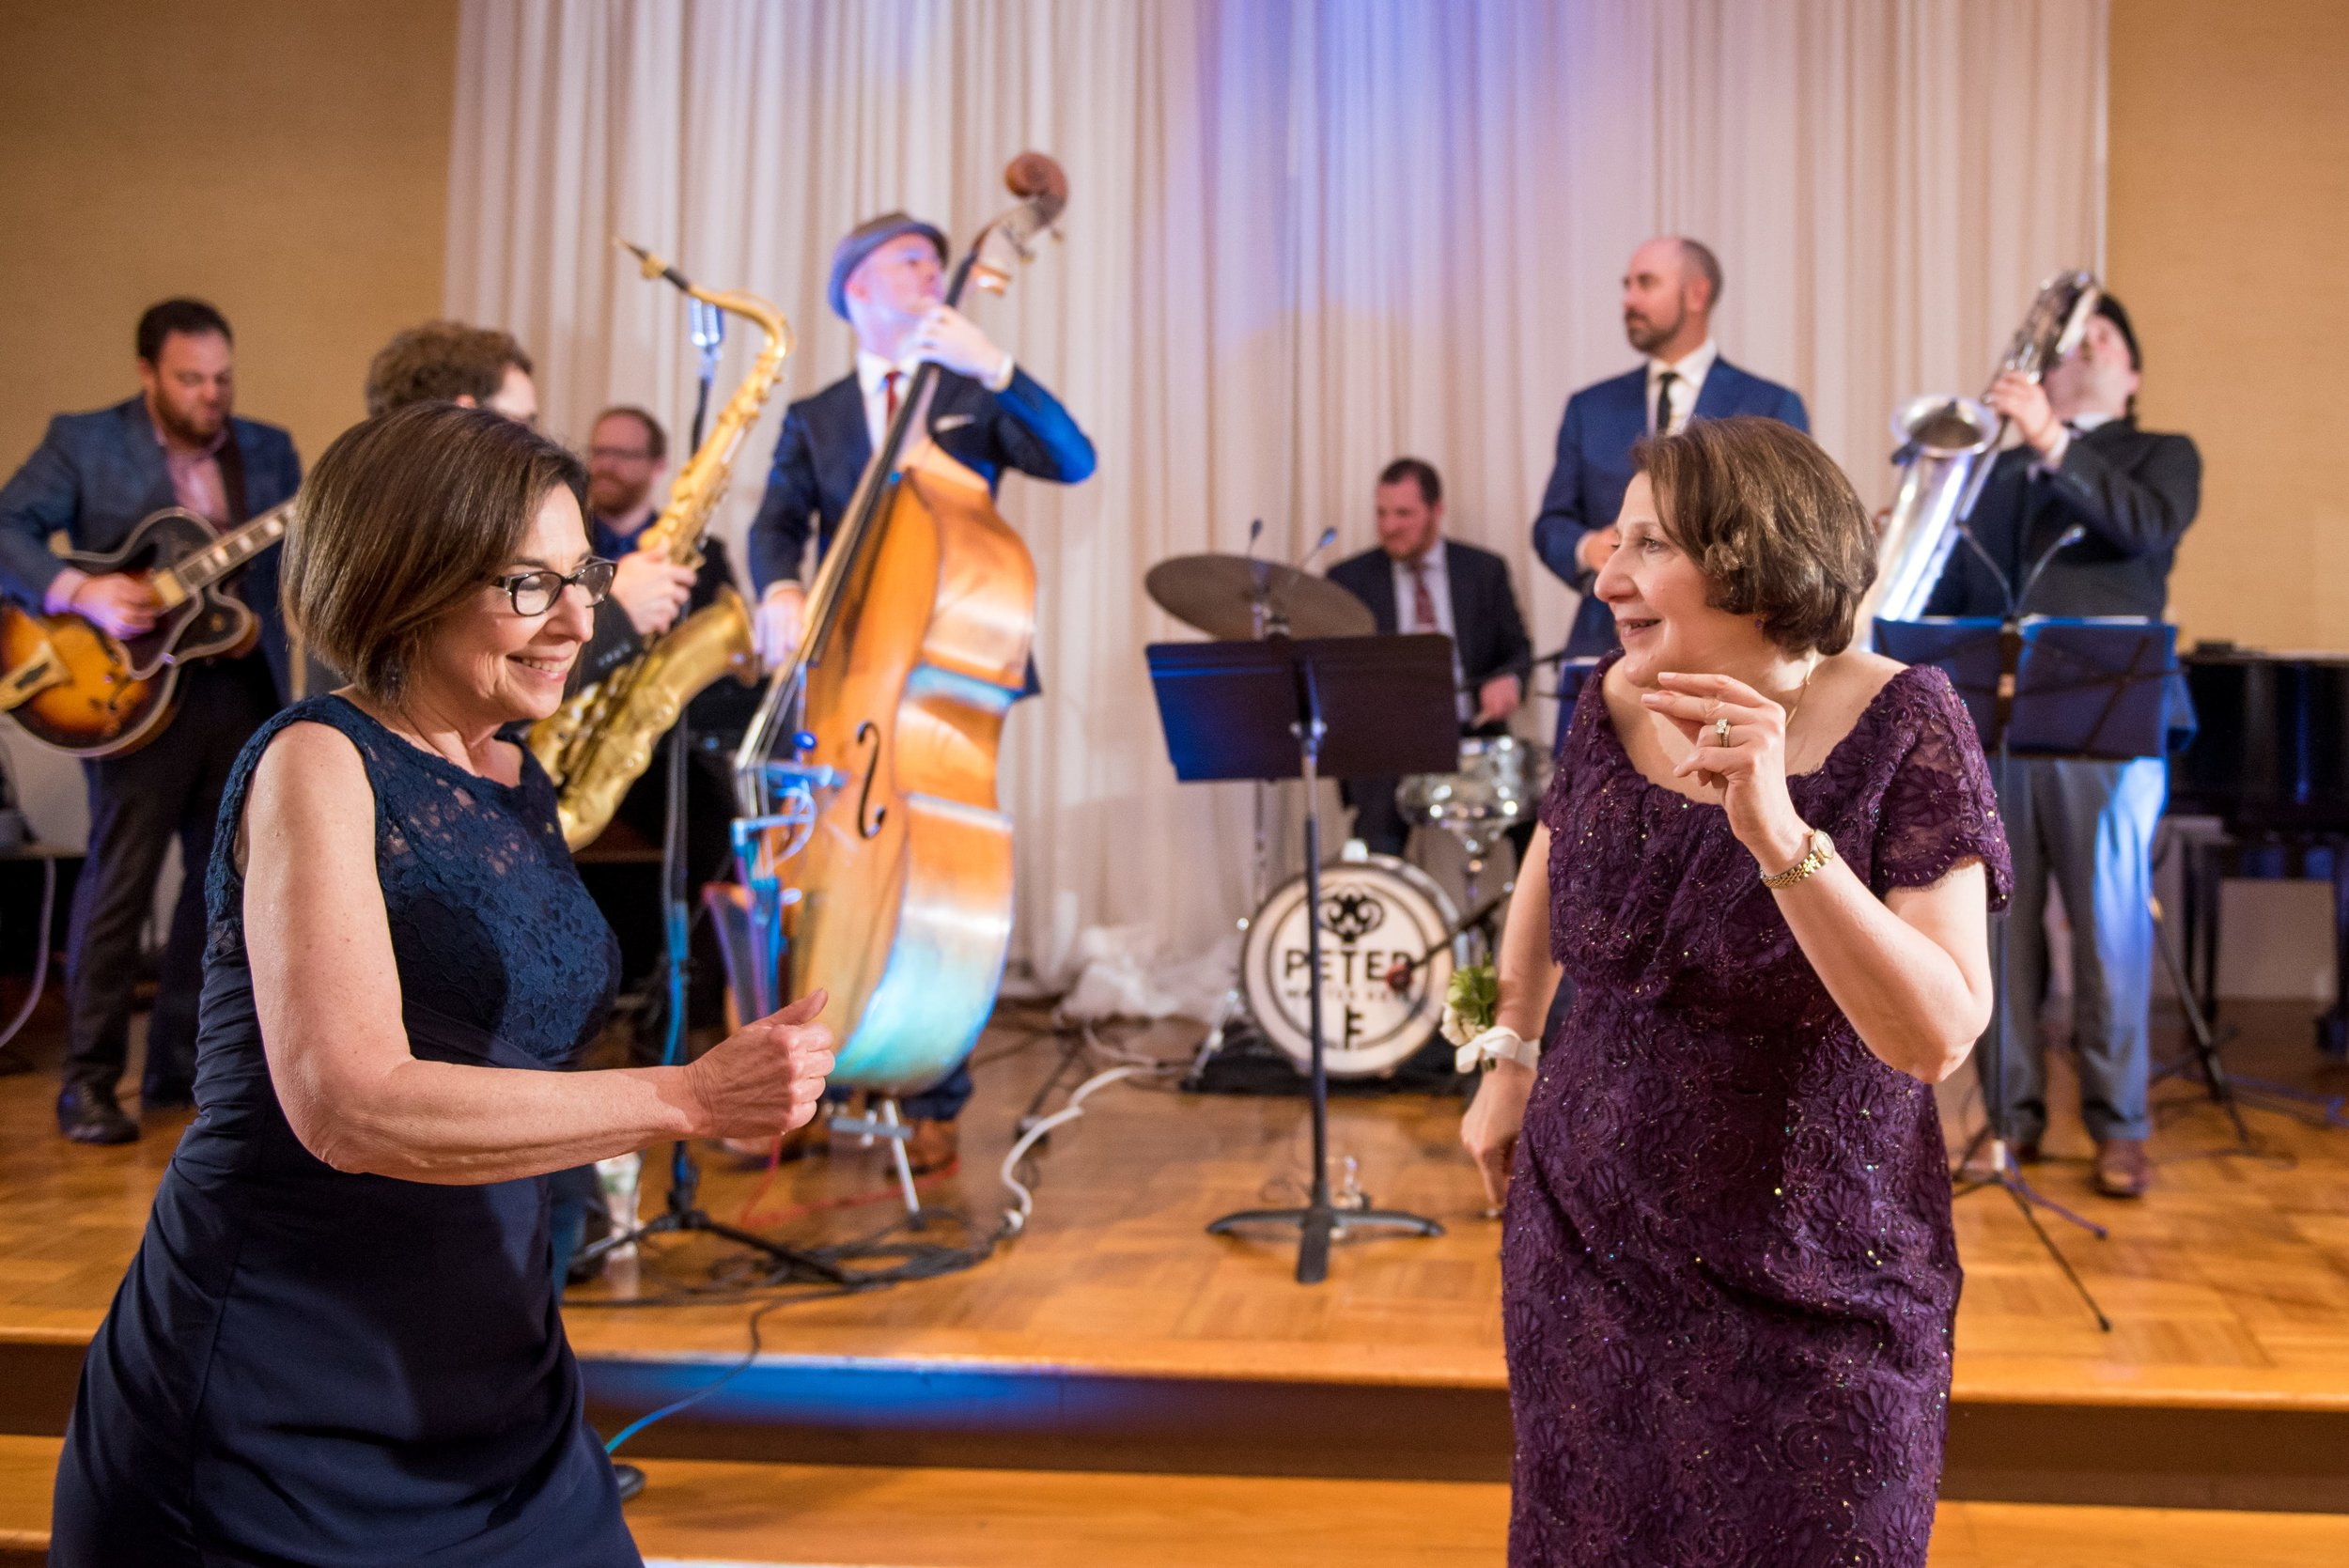 The aunts love it! This jazz wedding band makes sure that folks are dancing.